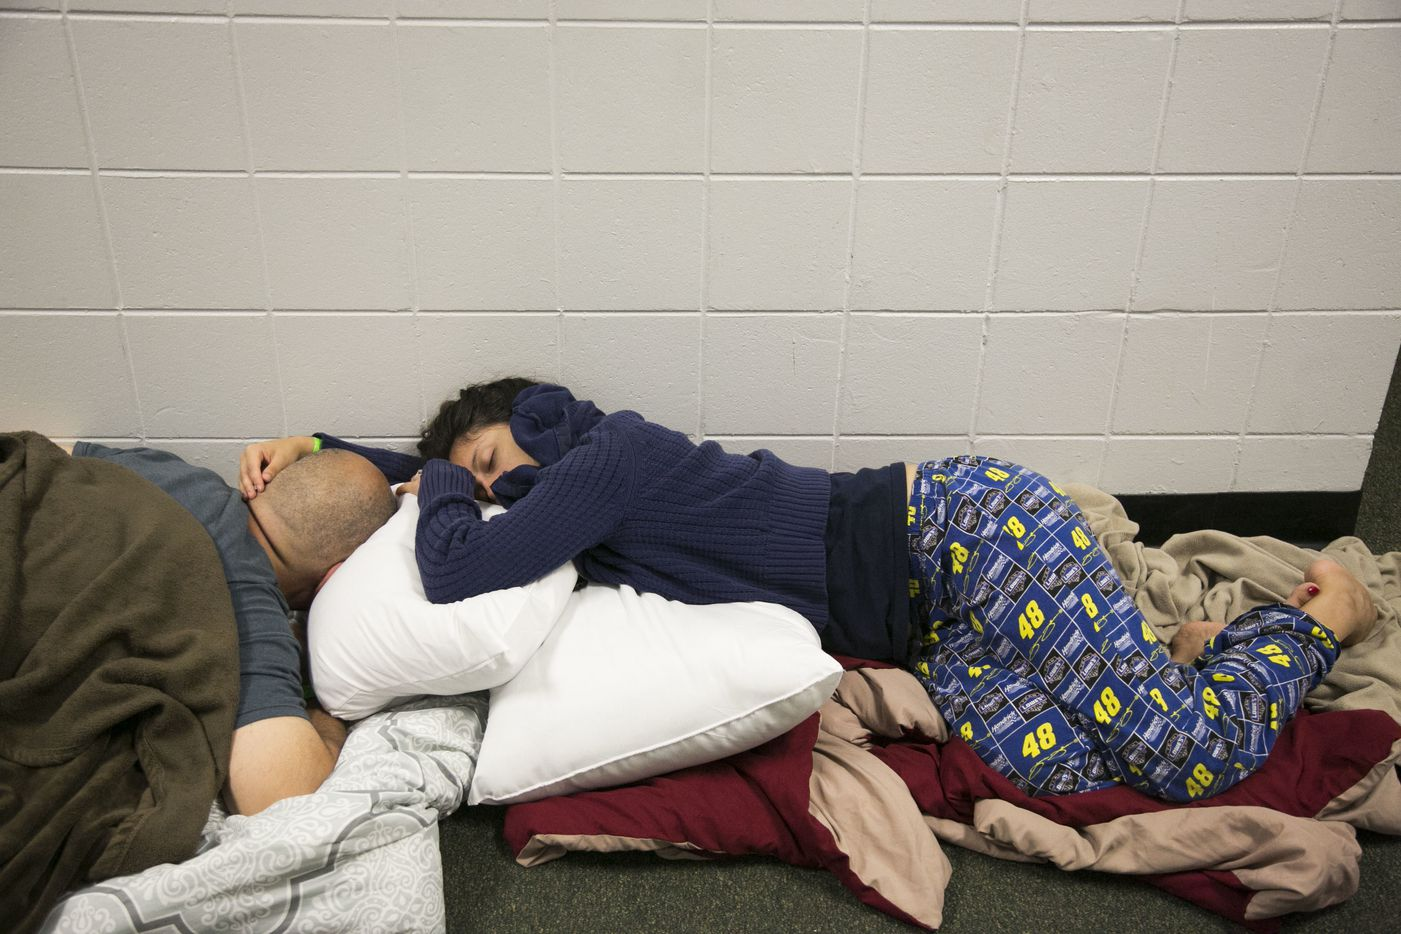 Yaya Lopez holds her fiance, Howard Lopez, while they sleep in a hallway at John Hopkins Middle School on Sunday, Sept. 10, 2017, in St. Petersburg, Fla. The school filled classrooms and hallways with people evacuating before Hurricane Irma makes landfall.